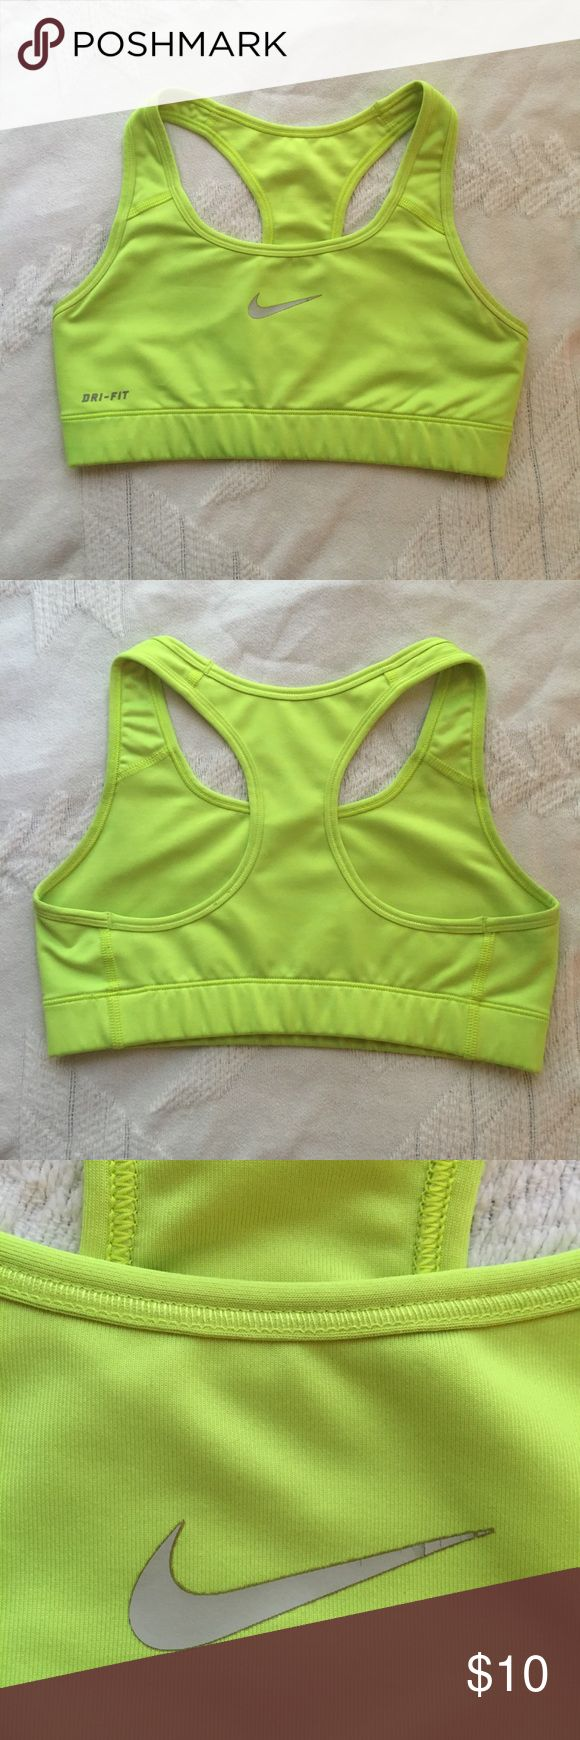 ✔️Nike Sports Bra Durable Nike sports bra. Some slight discoloration (shown in pics) and a slight cracking in the corner of the swoosh, but great, cute sports bra Nike Intimates & Sleepwear Bras